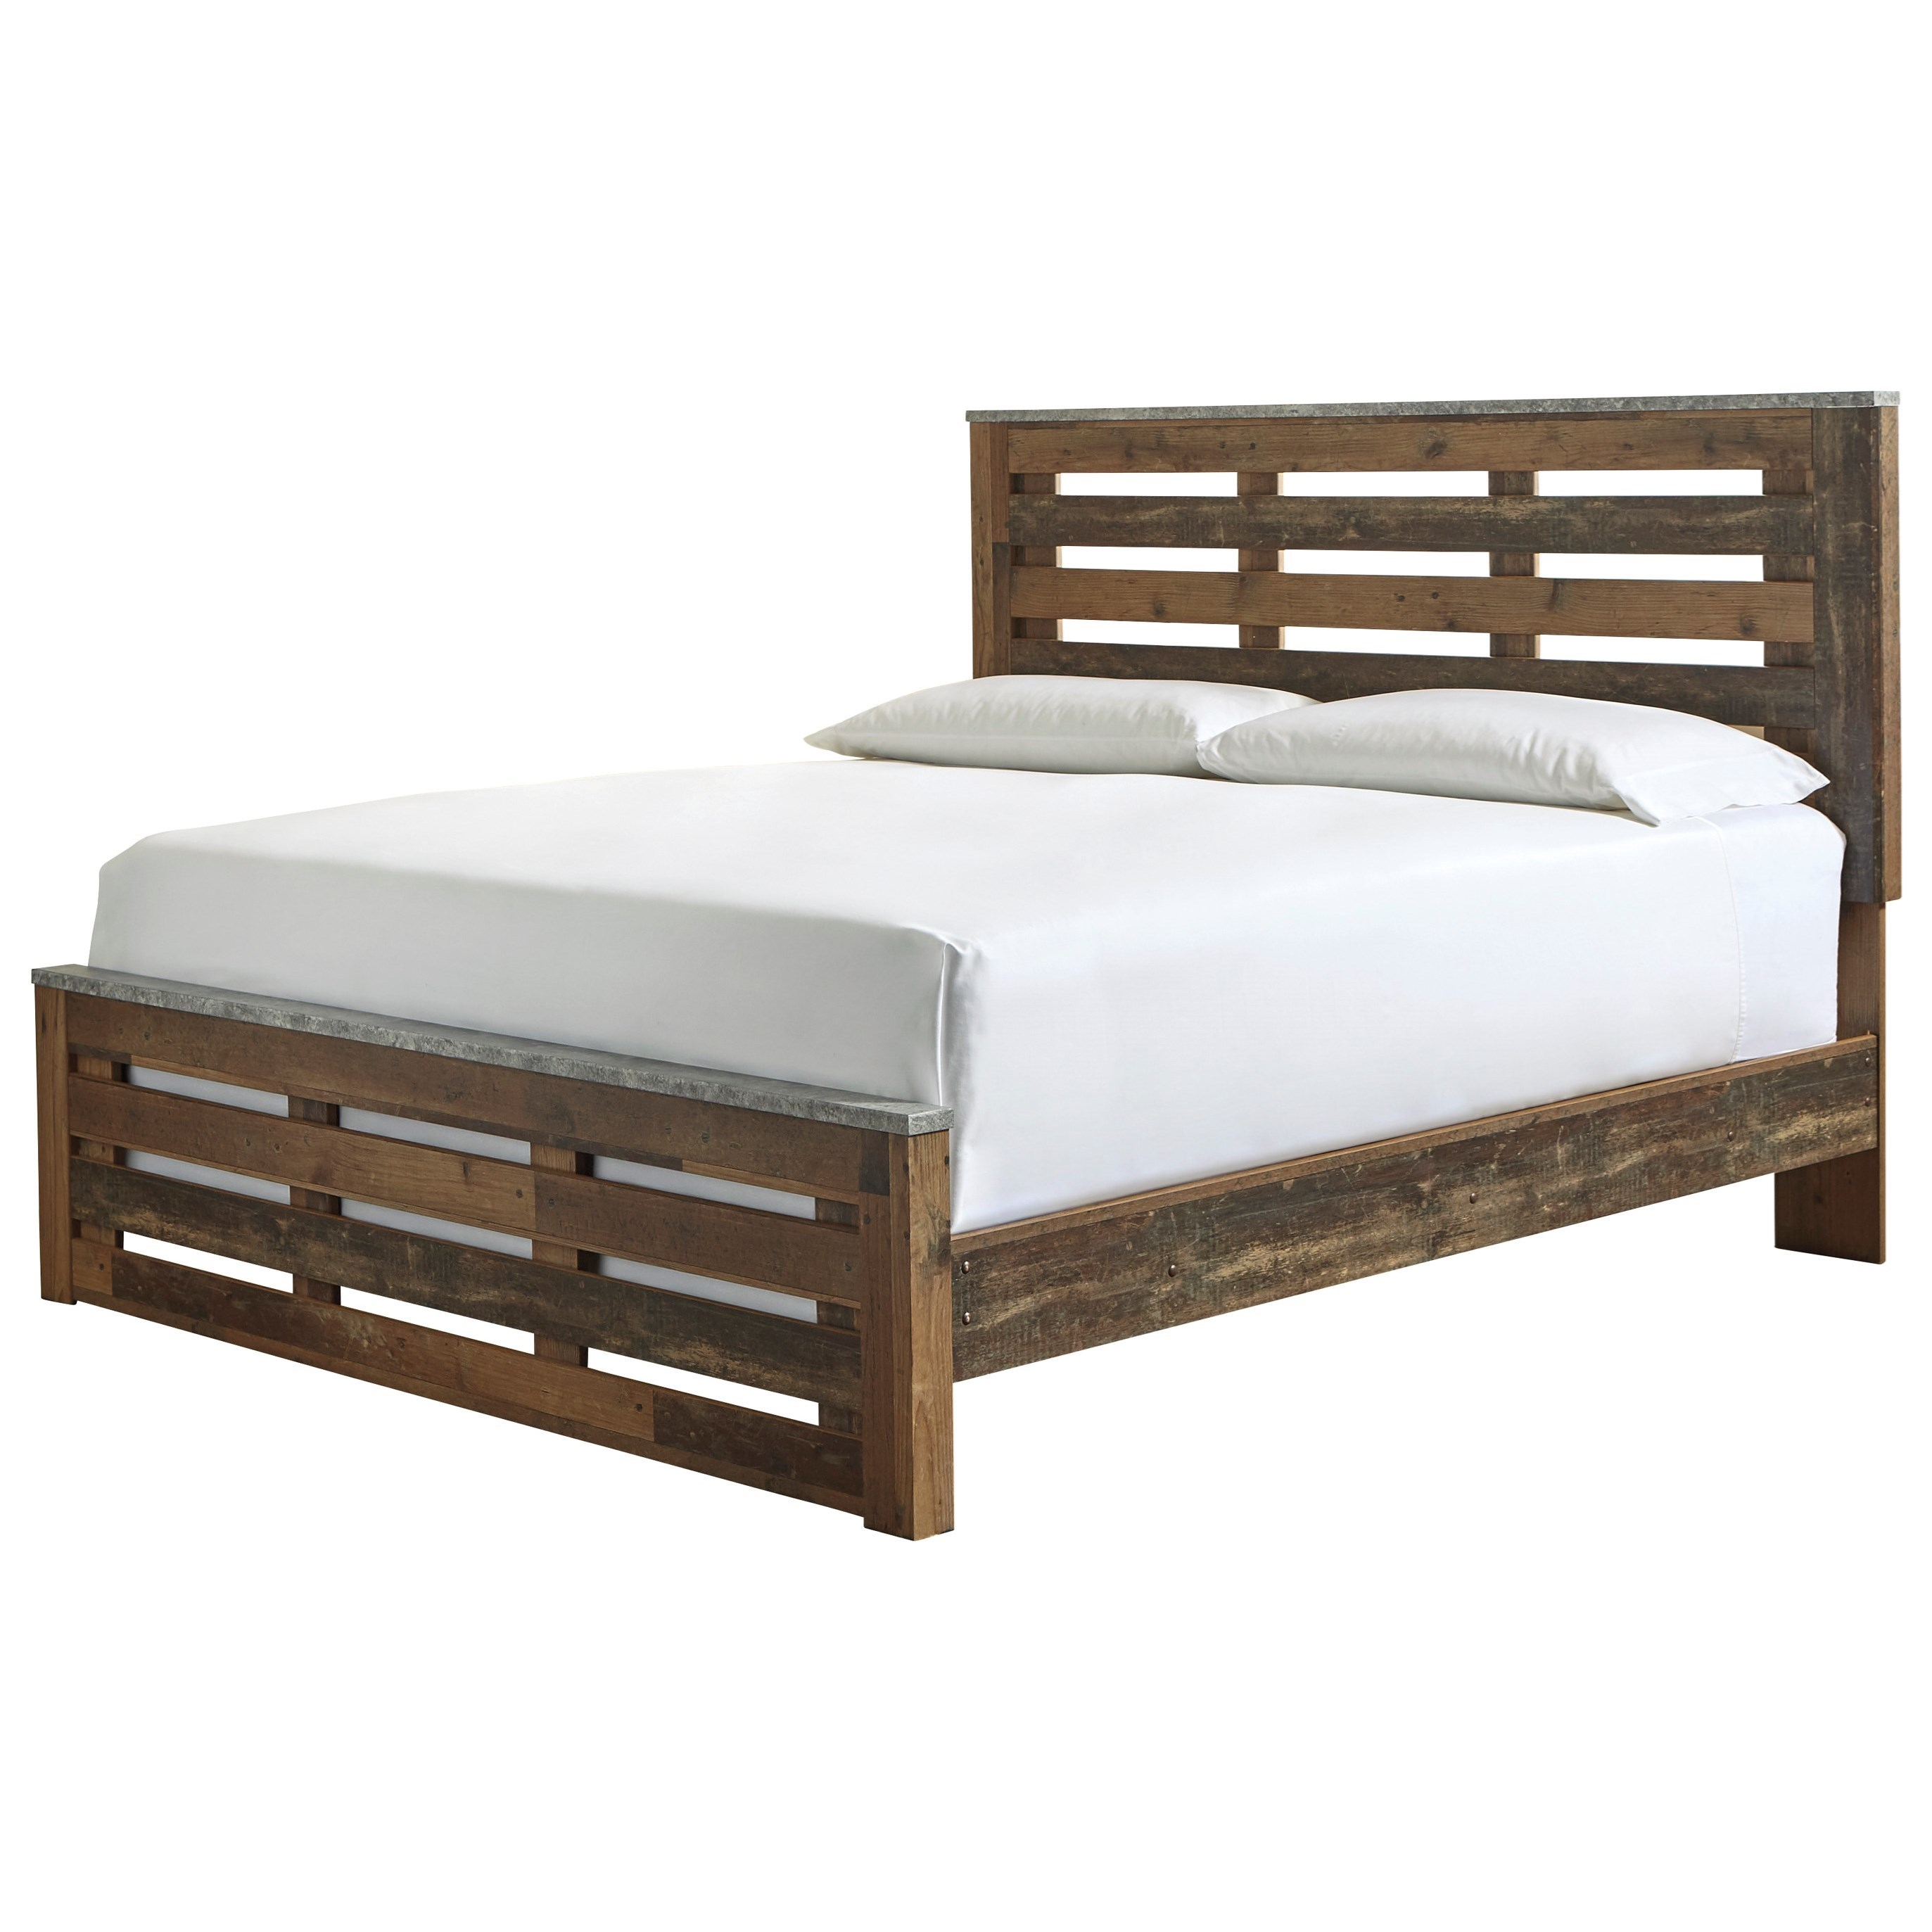 Chadbrook King Panel Bed by Benchcraft at Fisher Home Furnishings